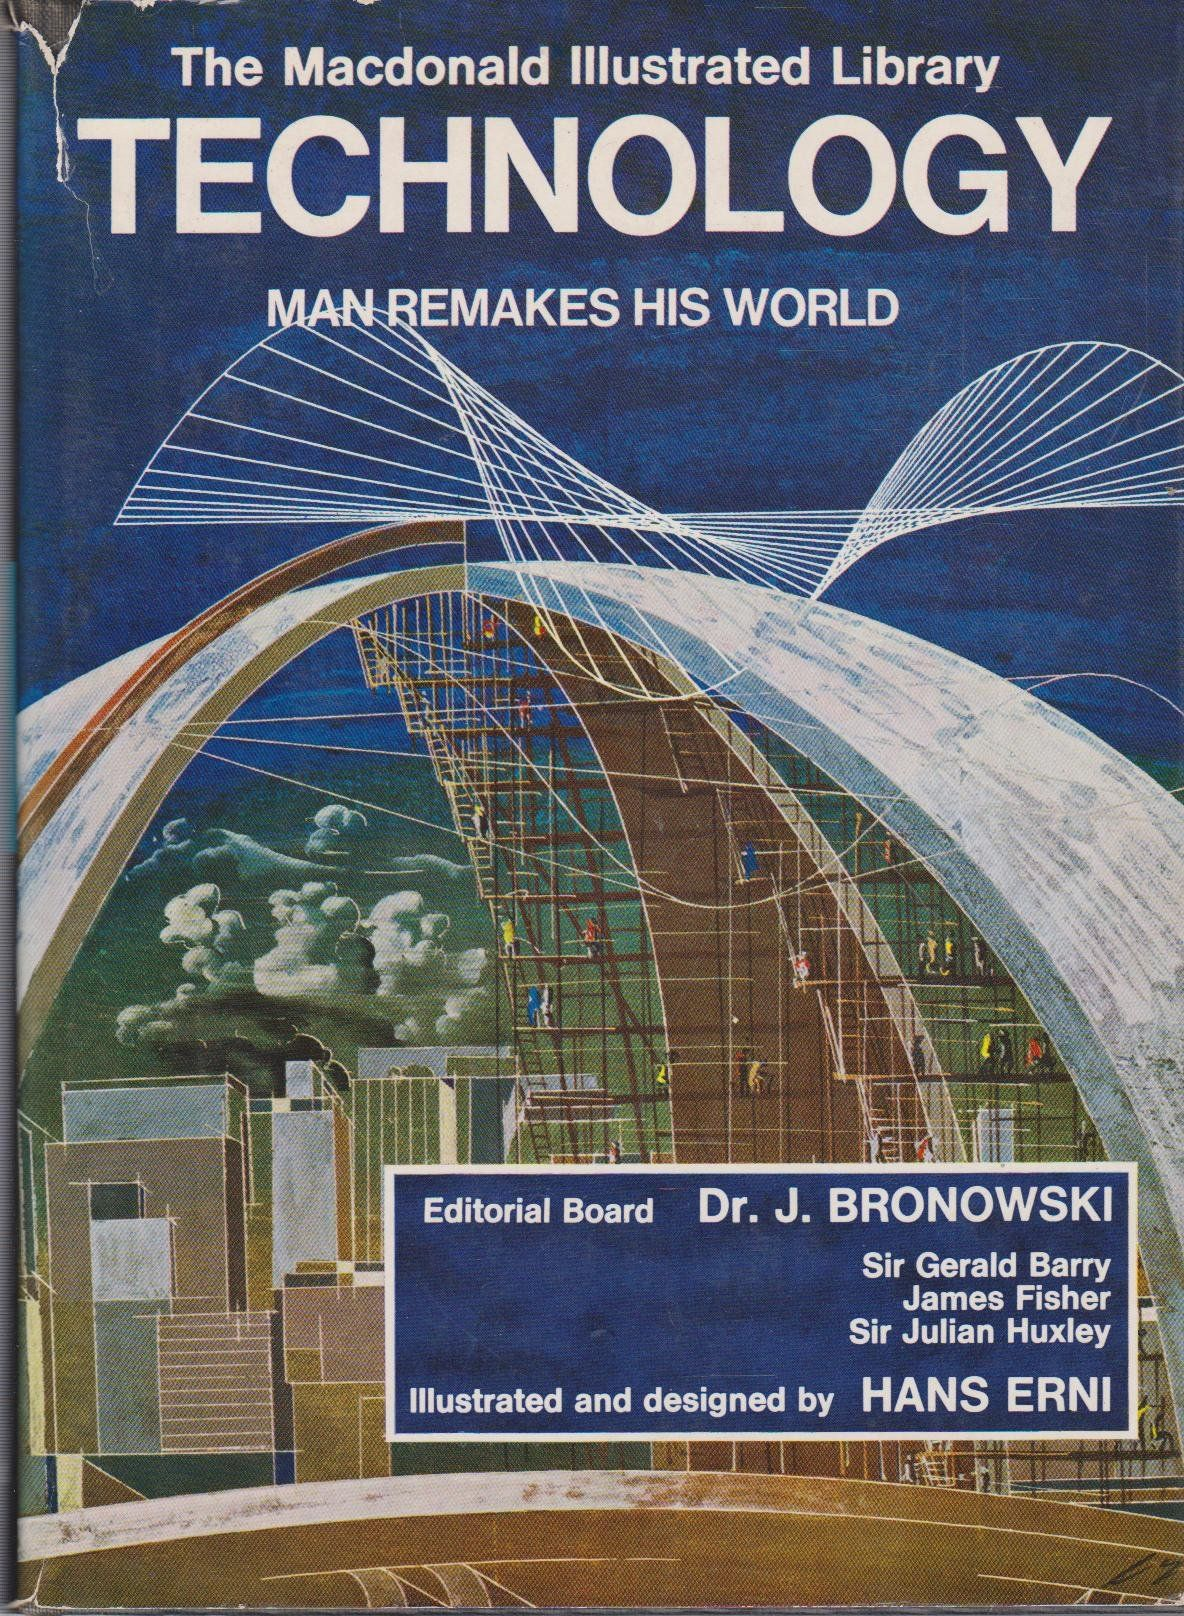 The MacDonald Illustrated Library Technology Man